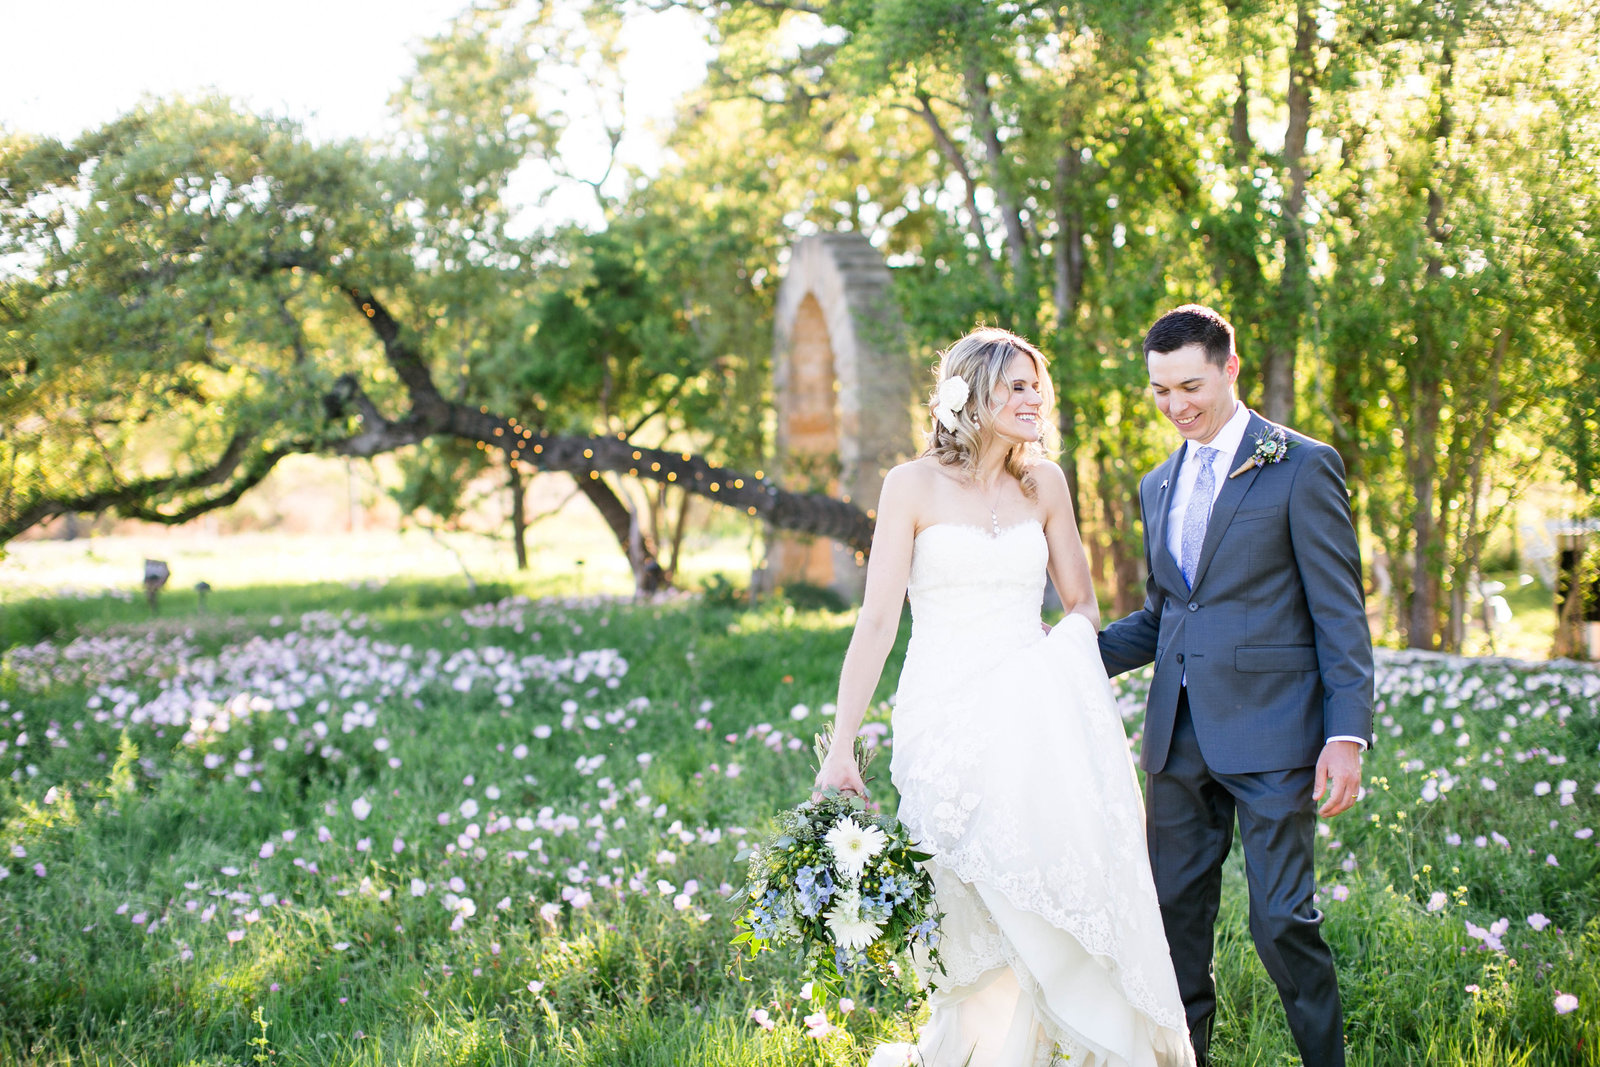 Studios-At-Fischer-Canyon-Lake-TX-Wedding-Photography-Bride-Groom-Photo-57